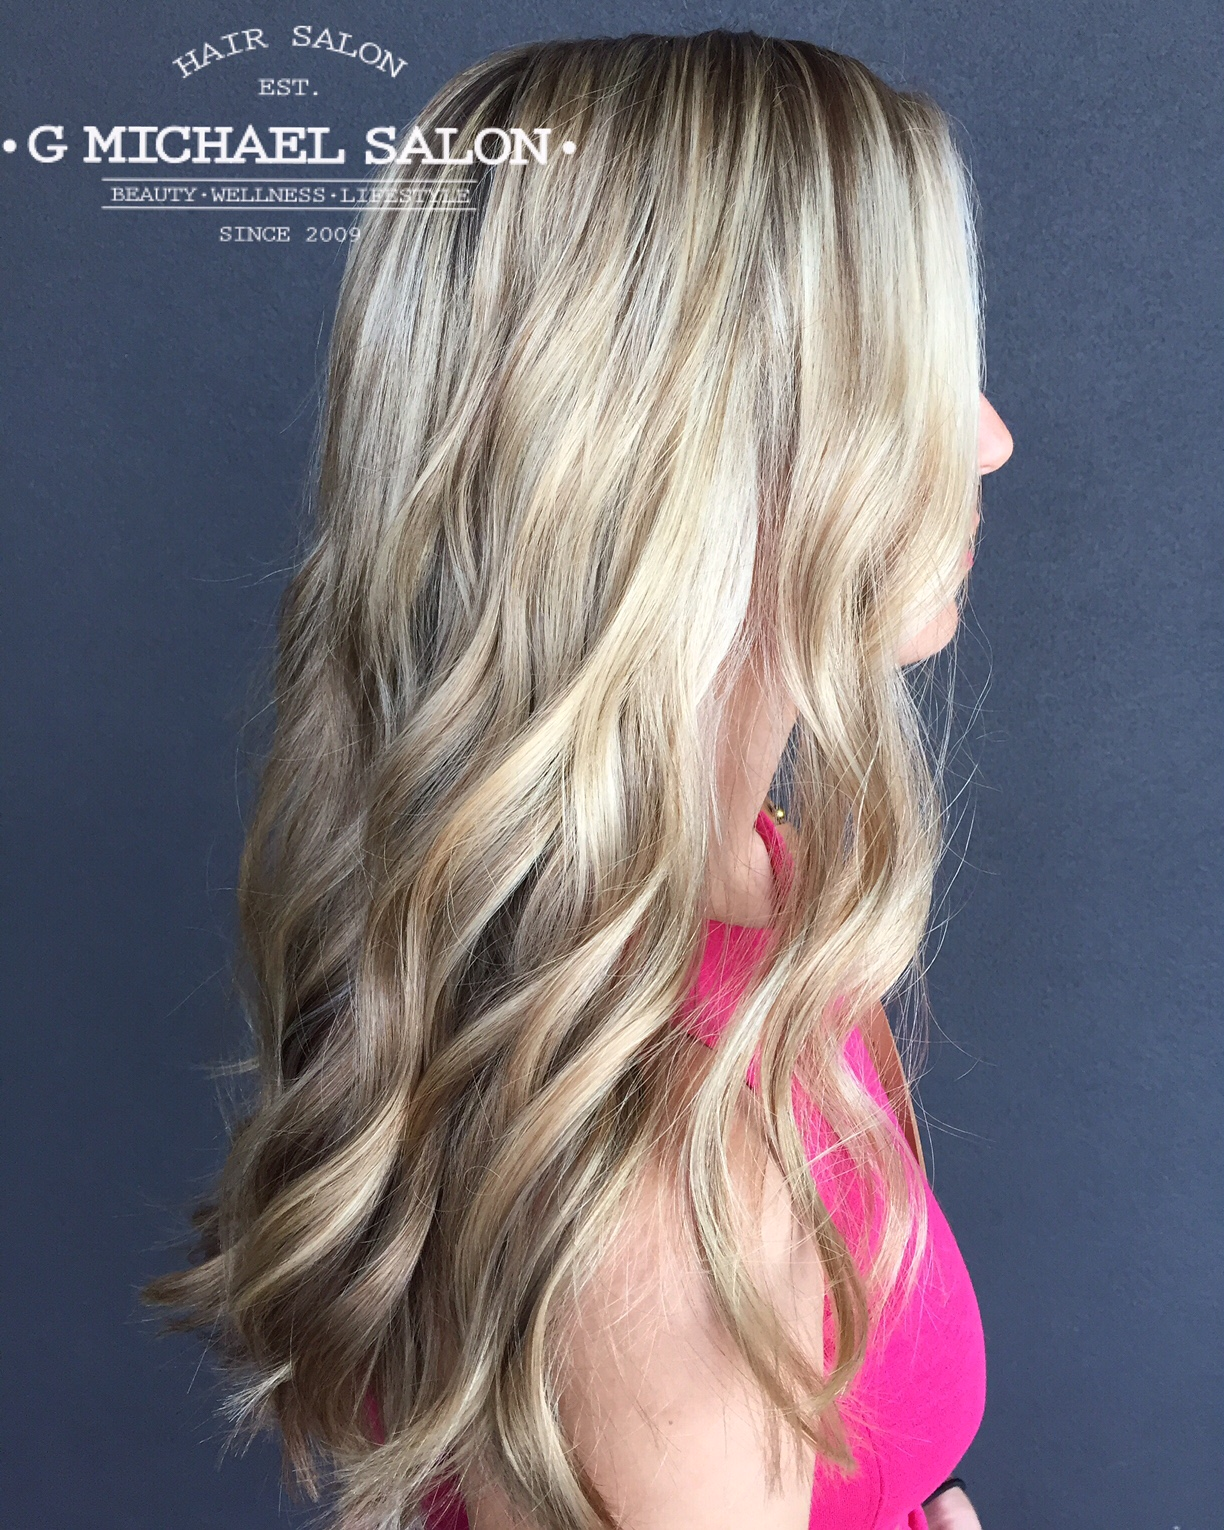 Indy S Balayage Hair Color Experts G Michael Salon At